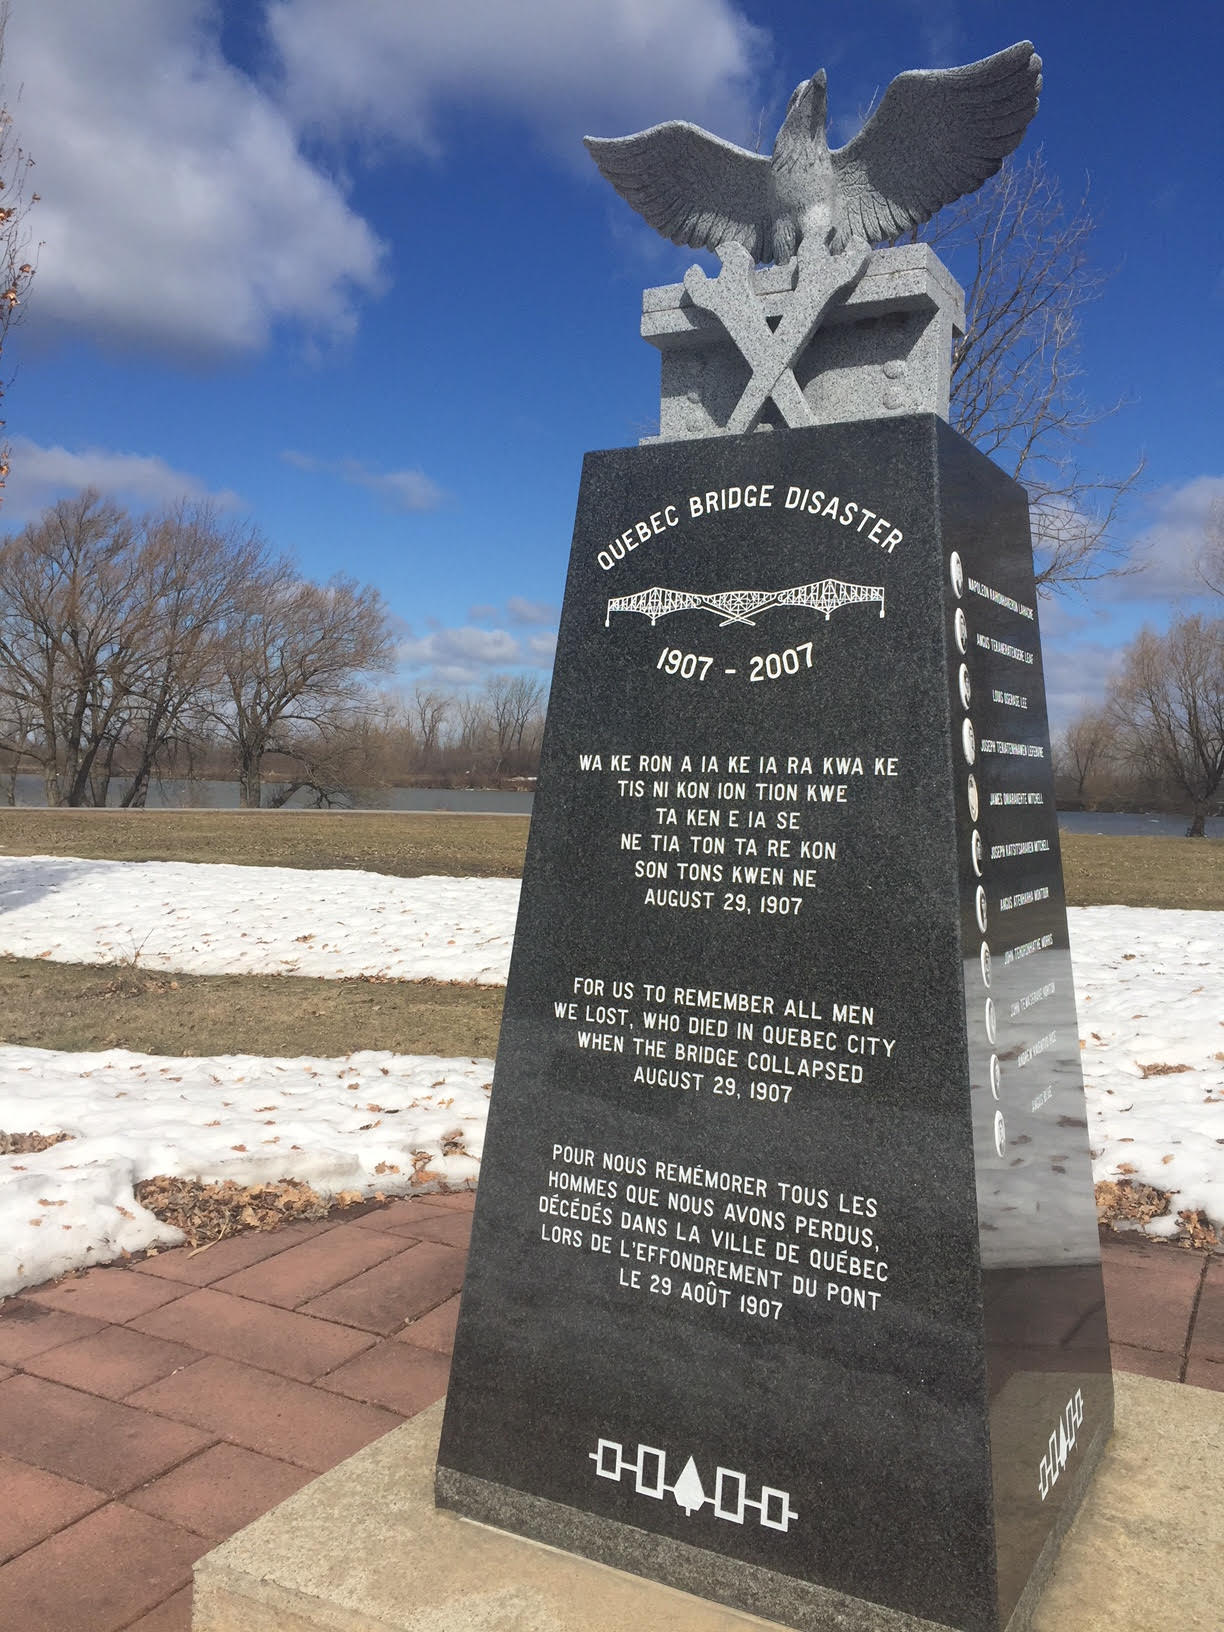 The monument for the ironworkers